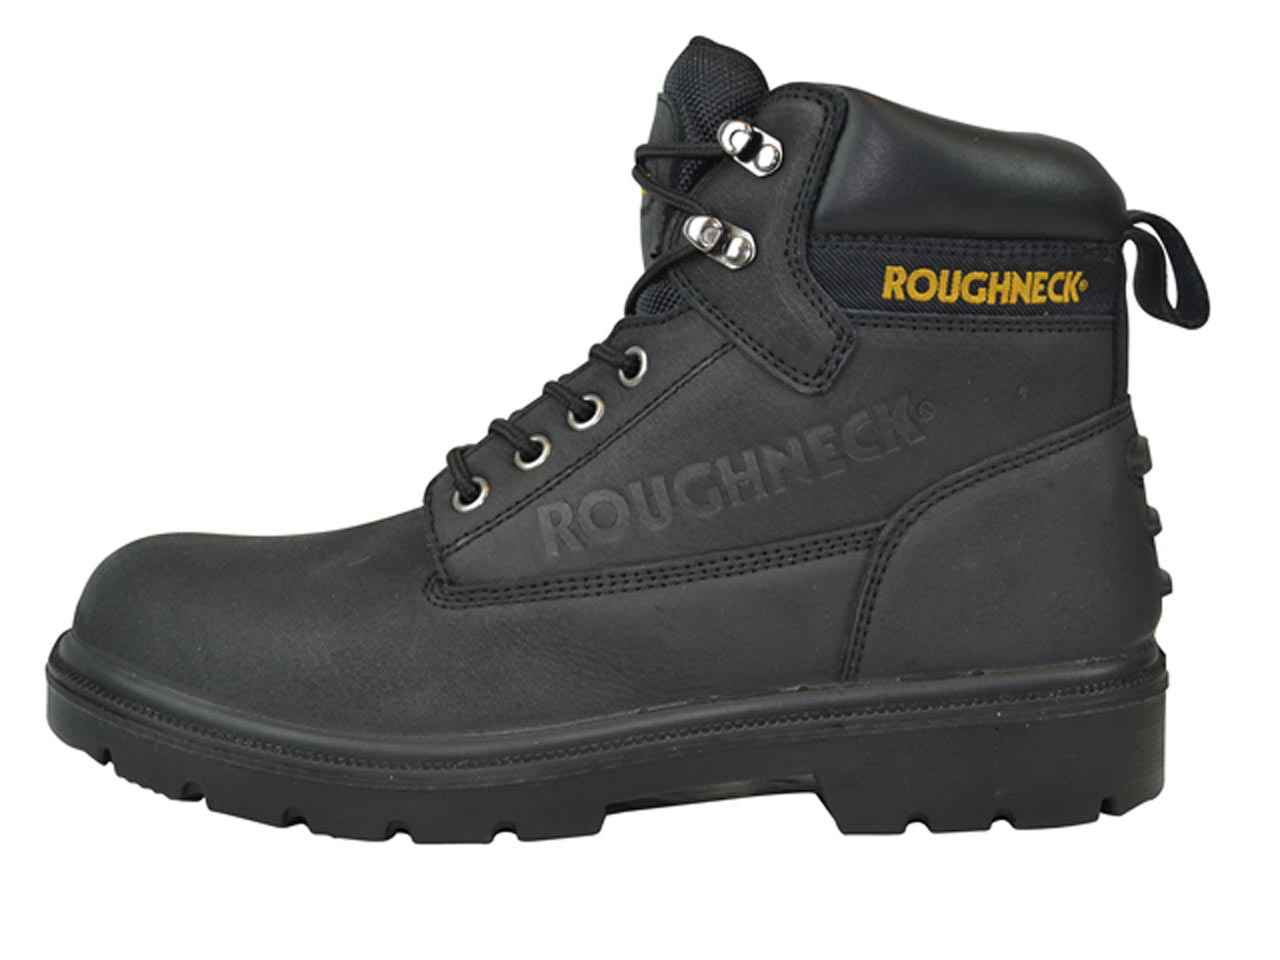 f3cac25acfb Roughneck Tornado Boots Various Colours and Sizes